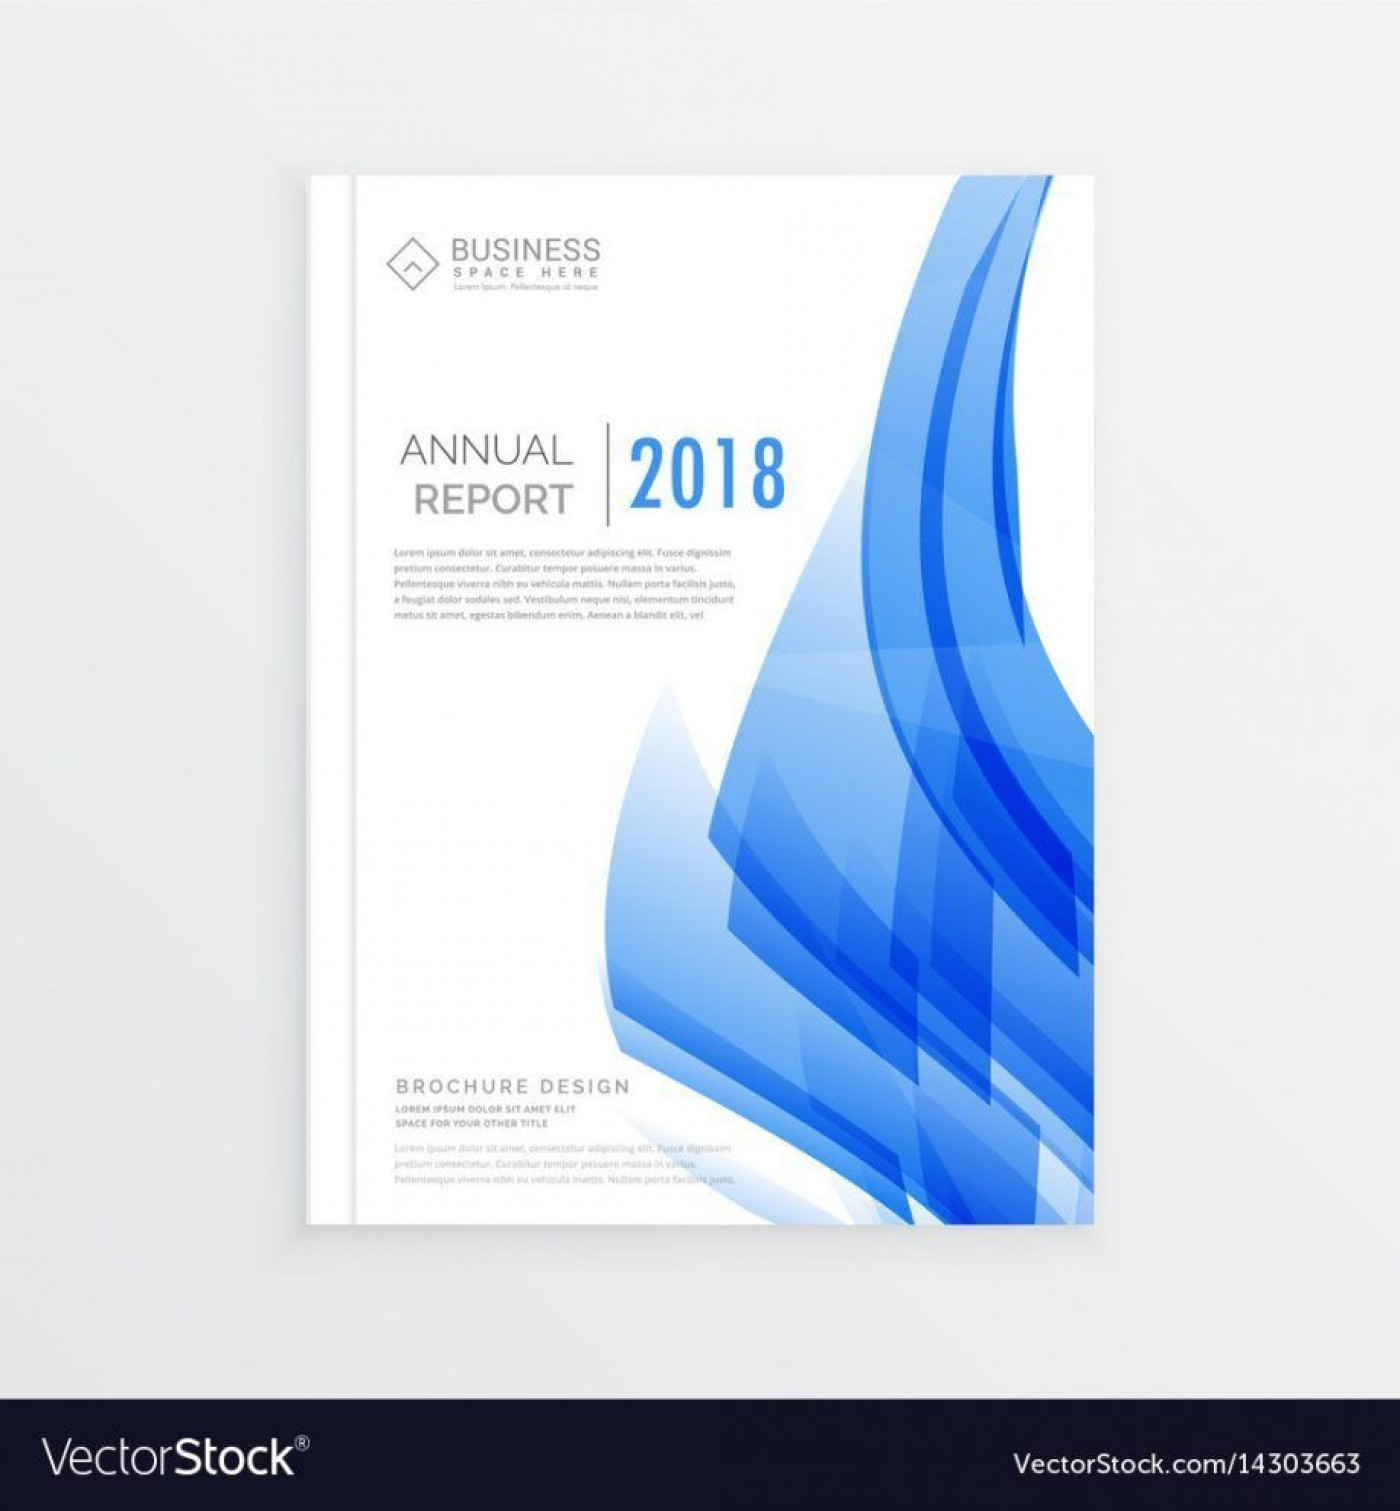 002 Surprising Free Download Annual Report Cover Design Template Photo  Page In Word1400